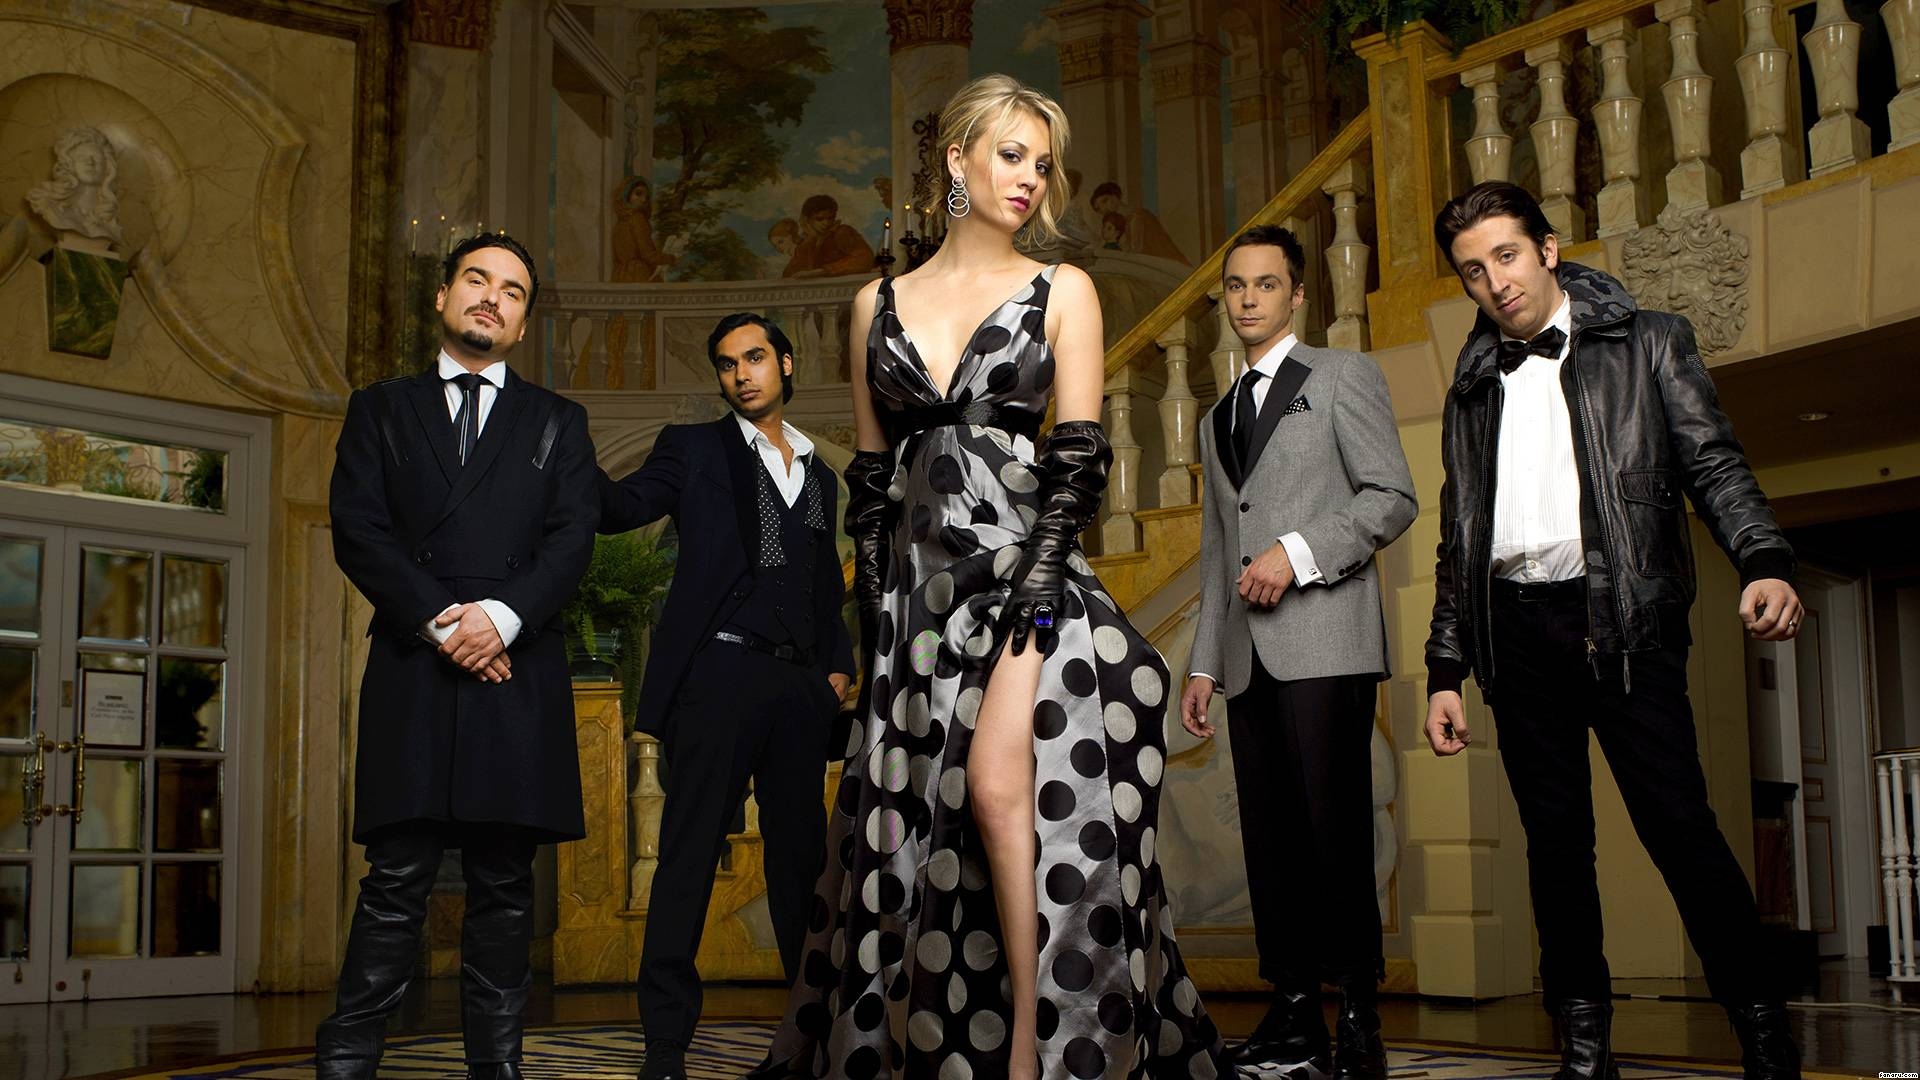 How Rich The Casts of The Big Bang Theory Are